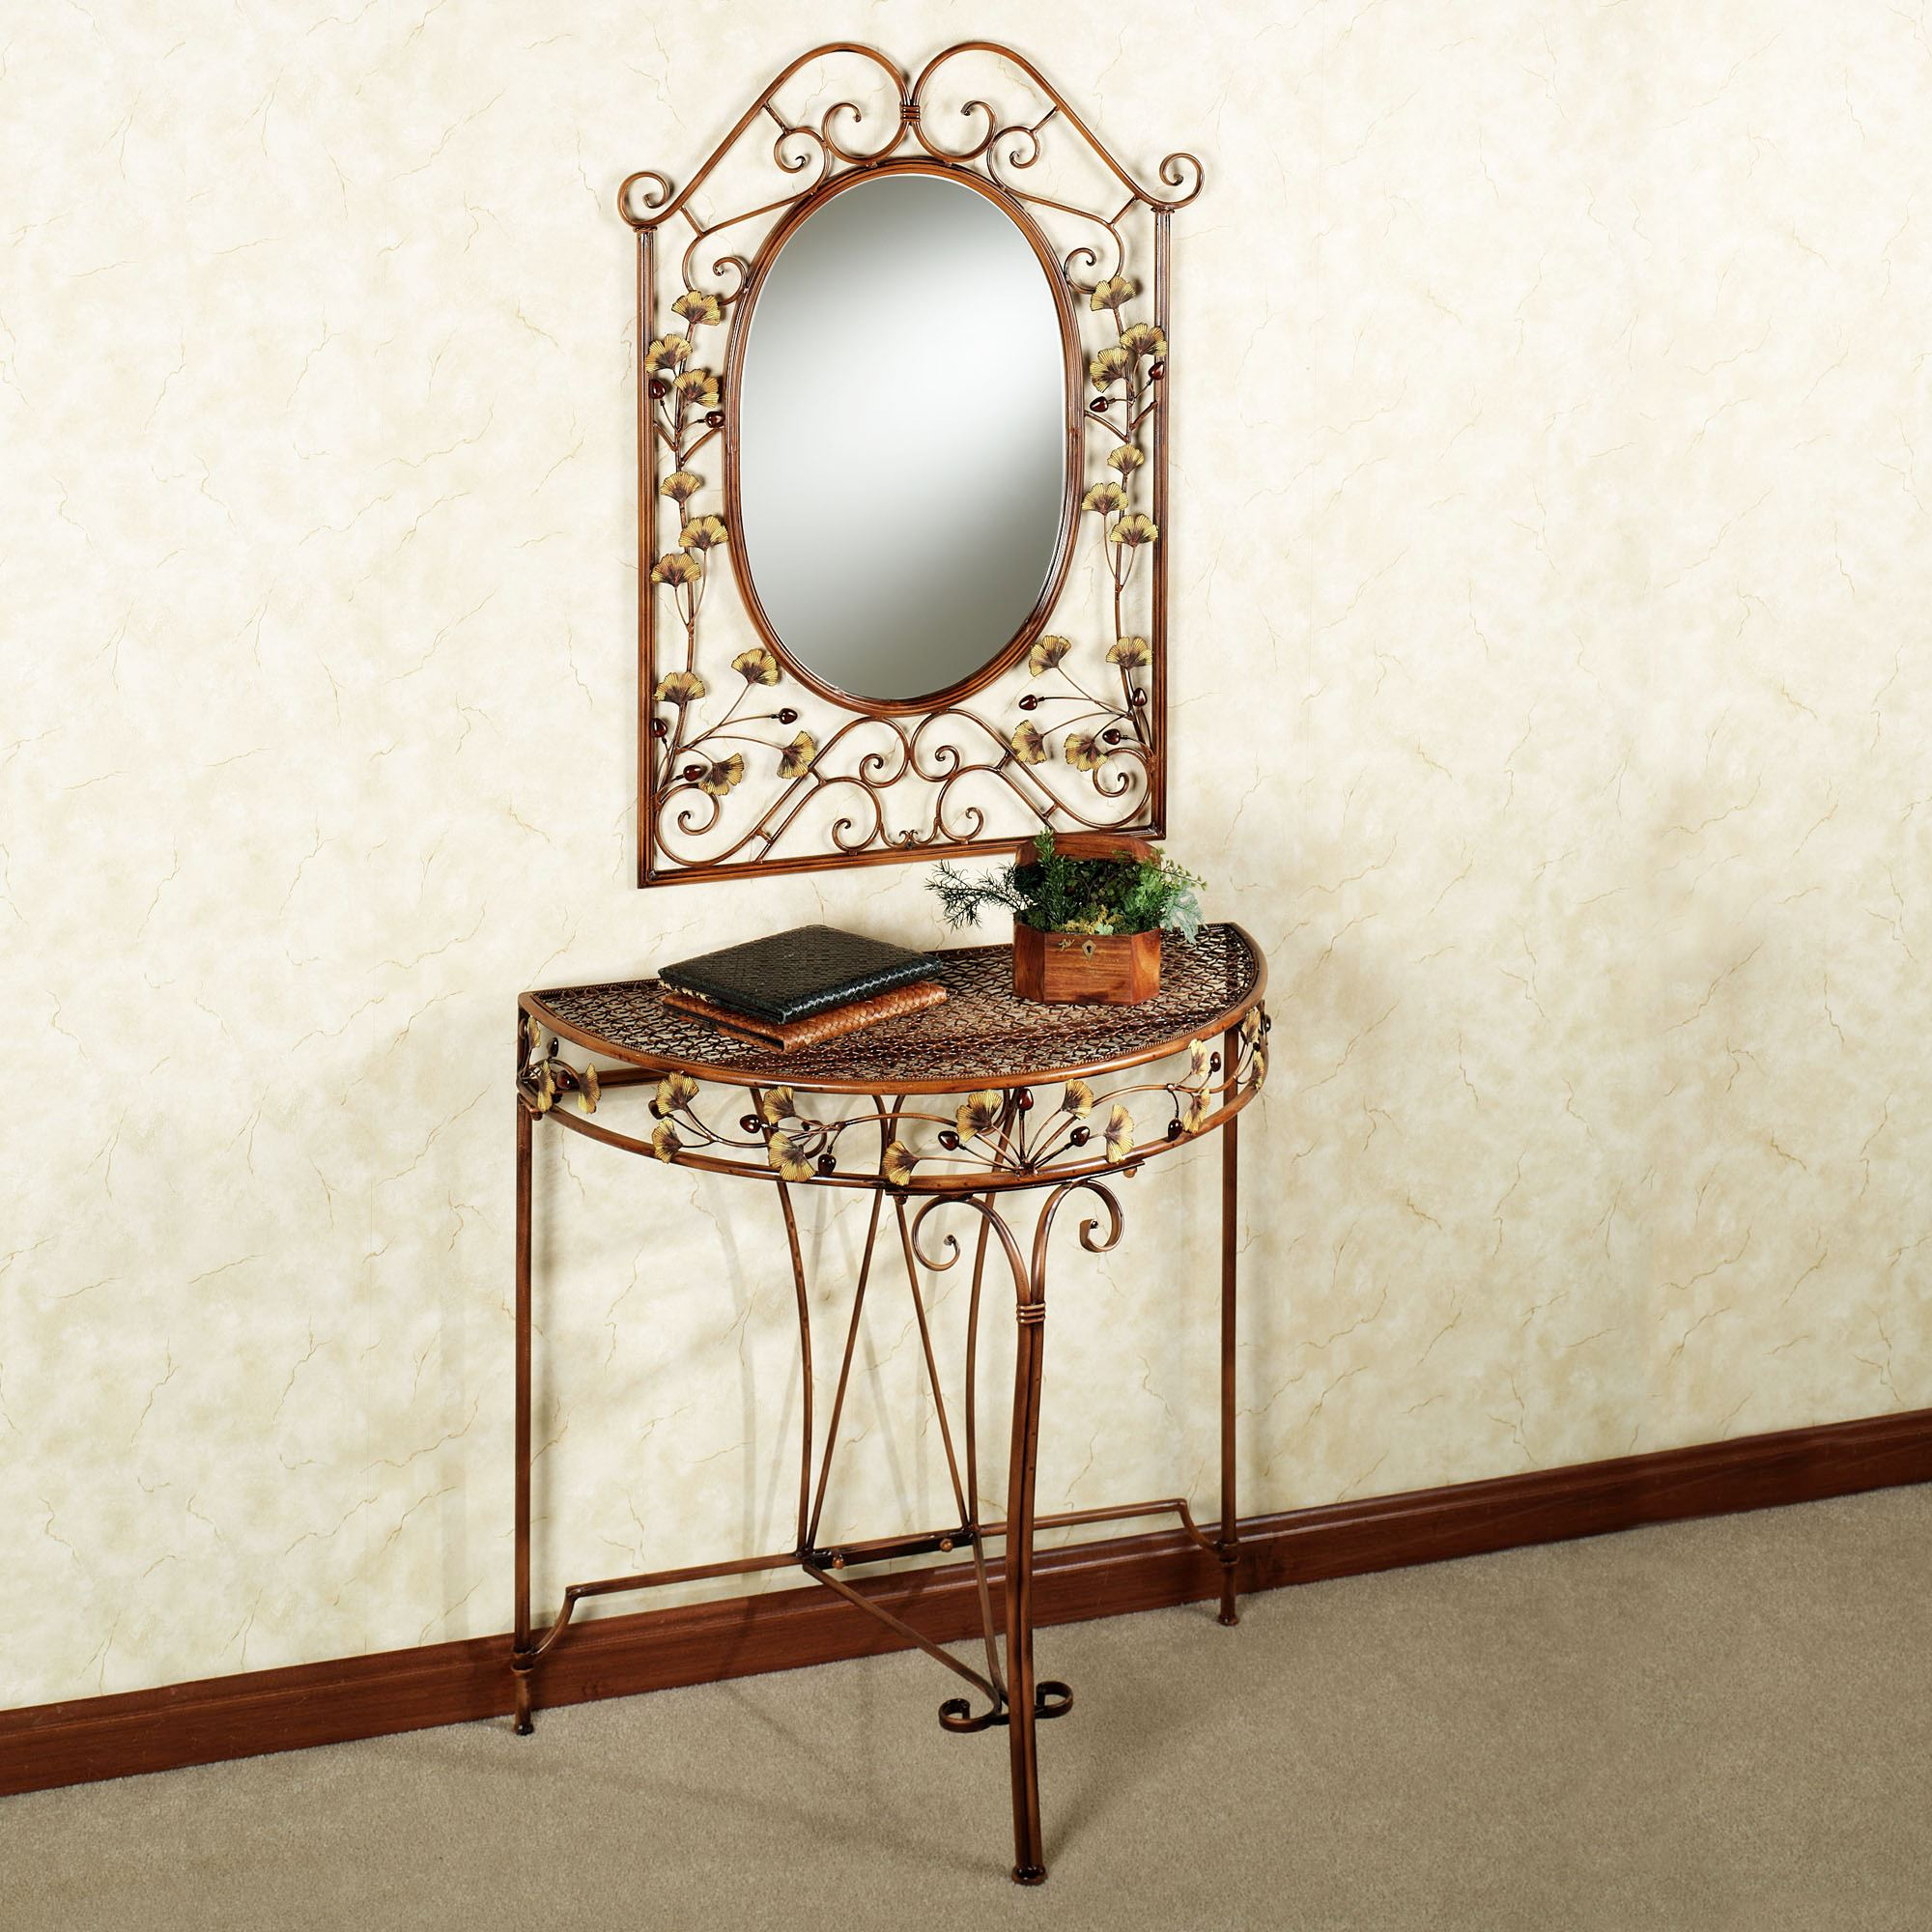 Ginkgo Console Table and Mirror Set & Ginkgo Console Table and Mirror